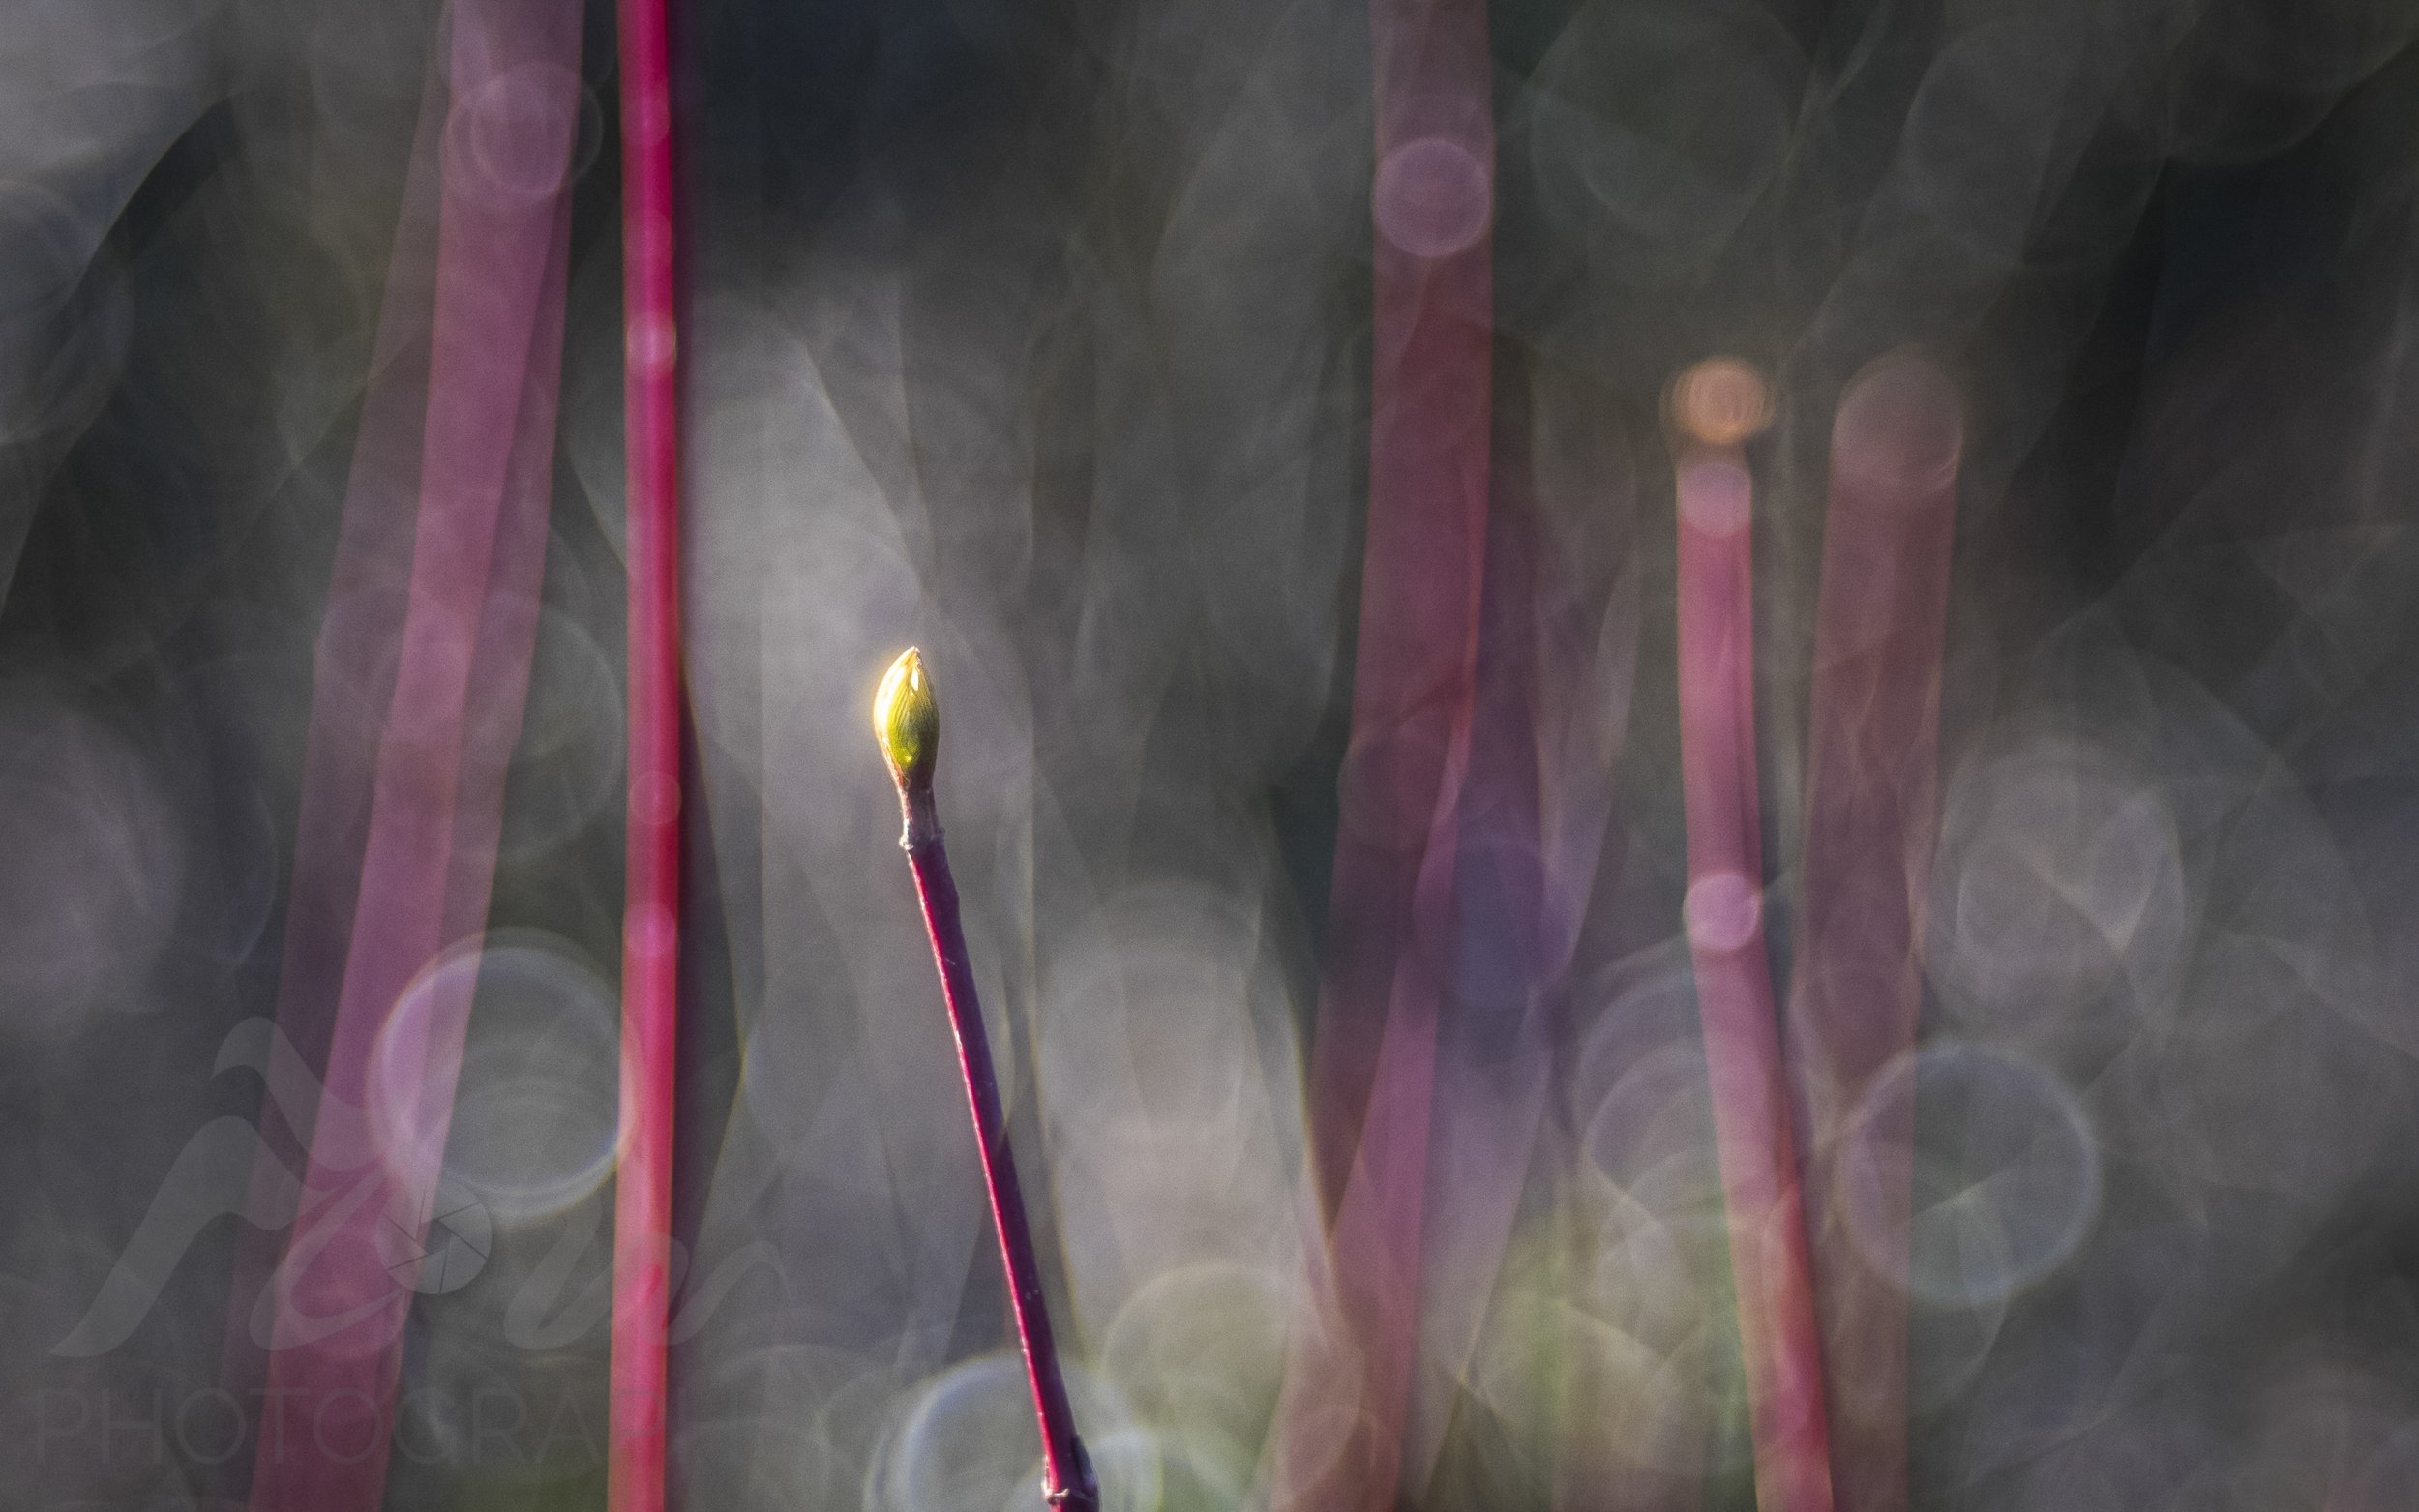 Illuminated   The low evening light on this Dogwood bud brings to my mind an illuminated flickering candle.